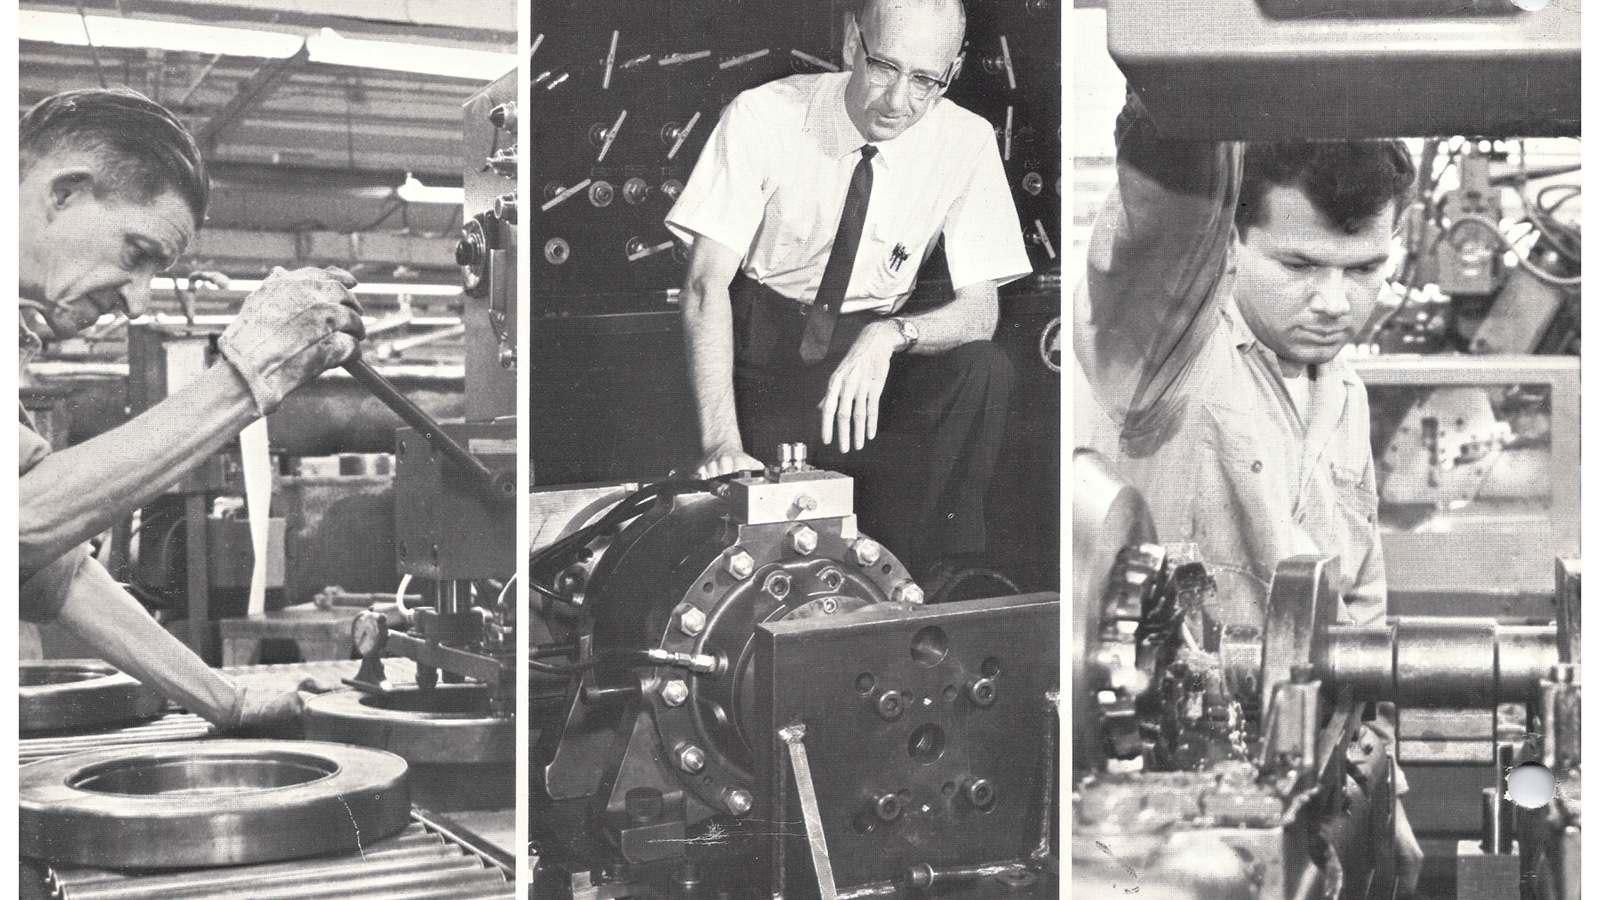 75th Anniversary - Manufacturing Then & Now